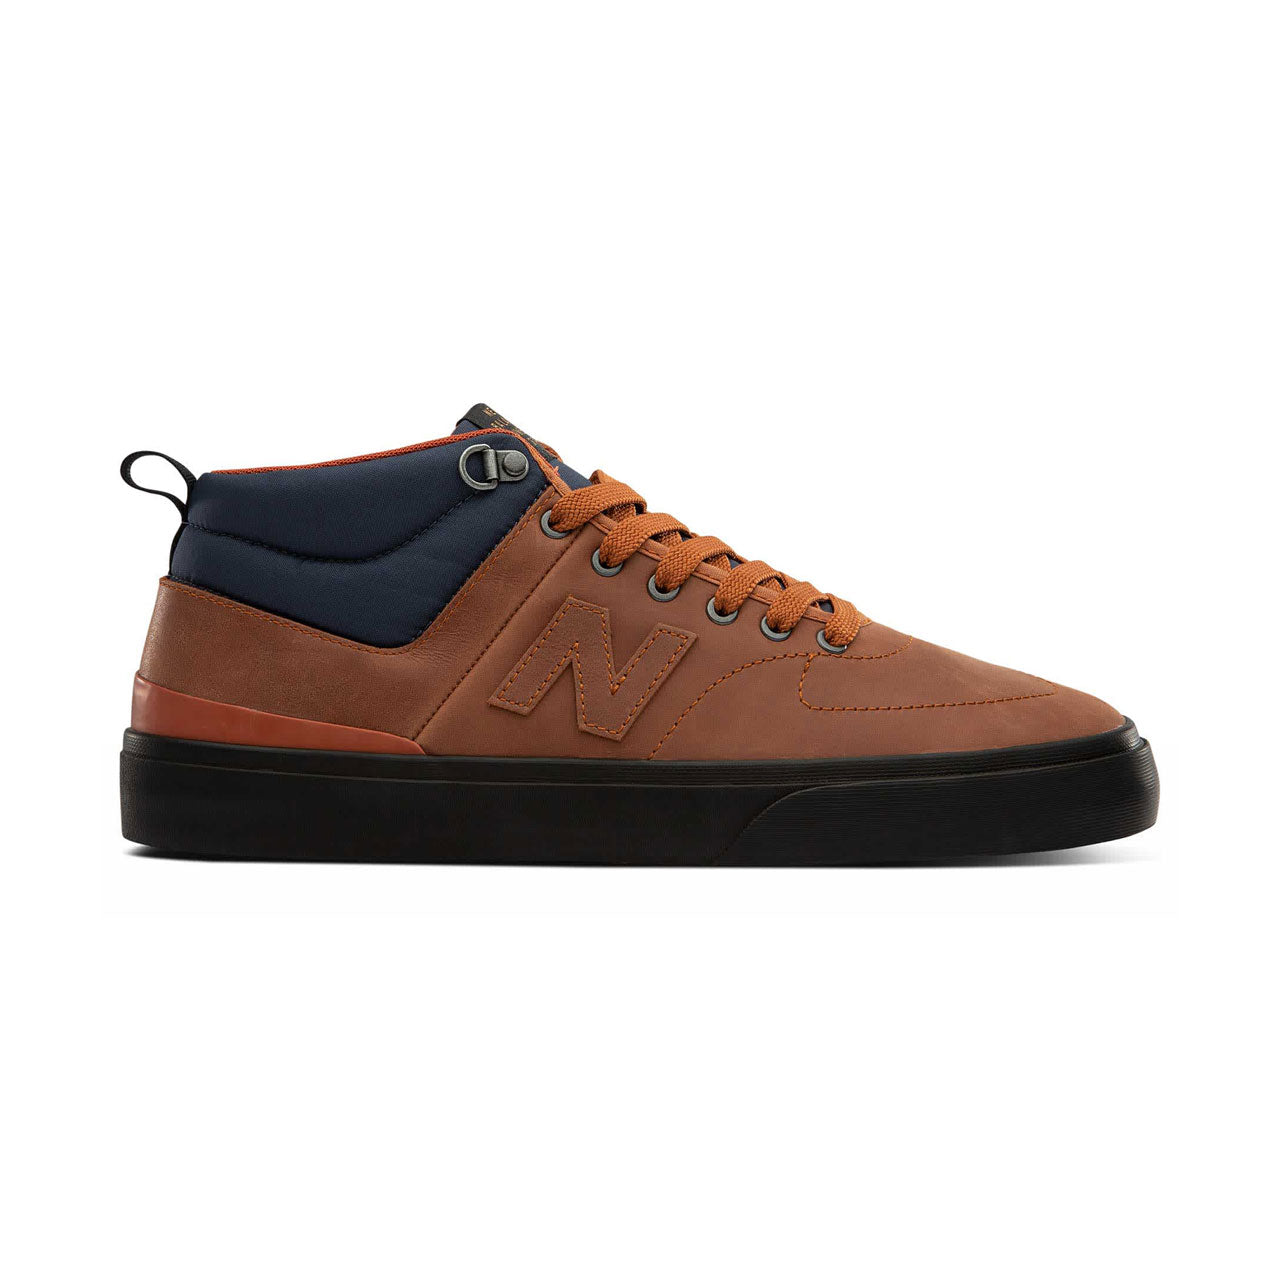 New Balance Numeric 379 Mid Sneakers